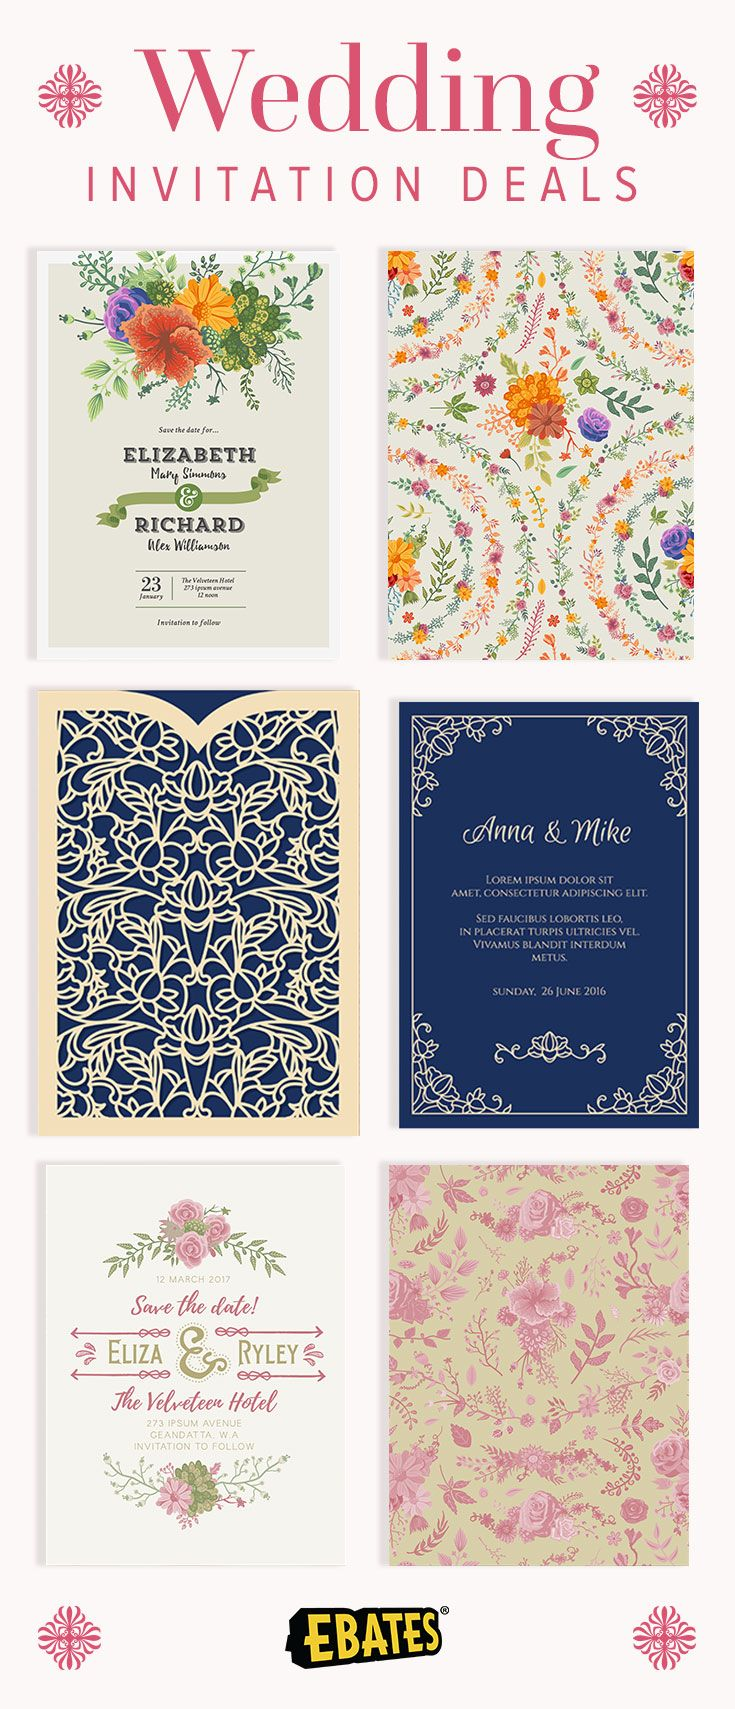 9 Best Created By Ads Bulk Editor 05 01 2017 23 45 42 Images On